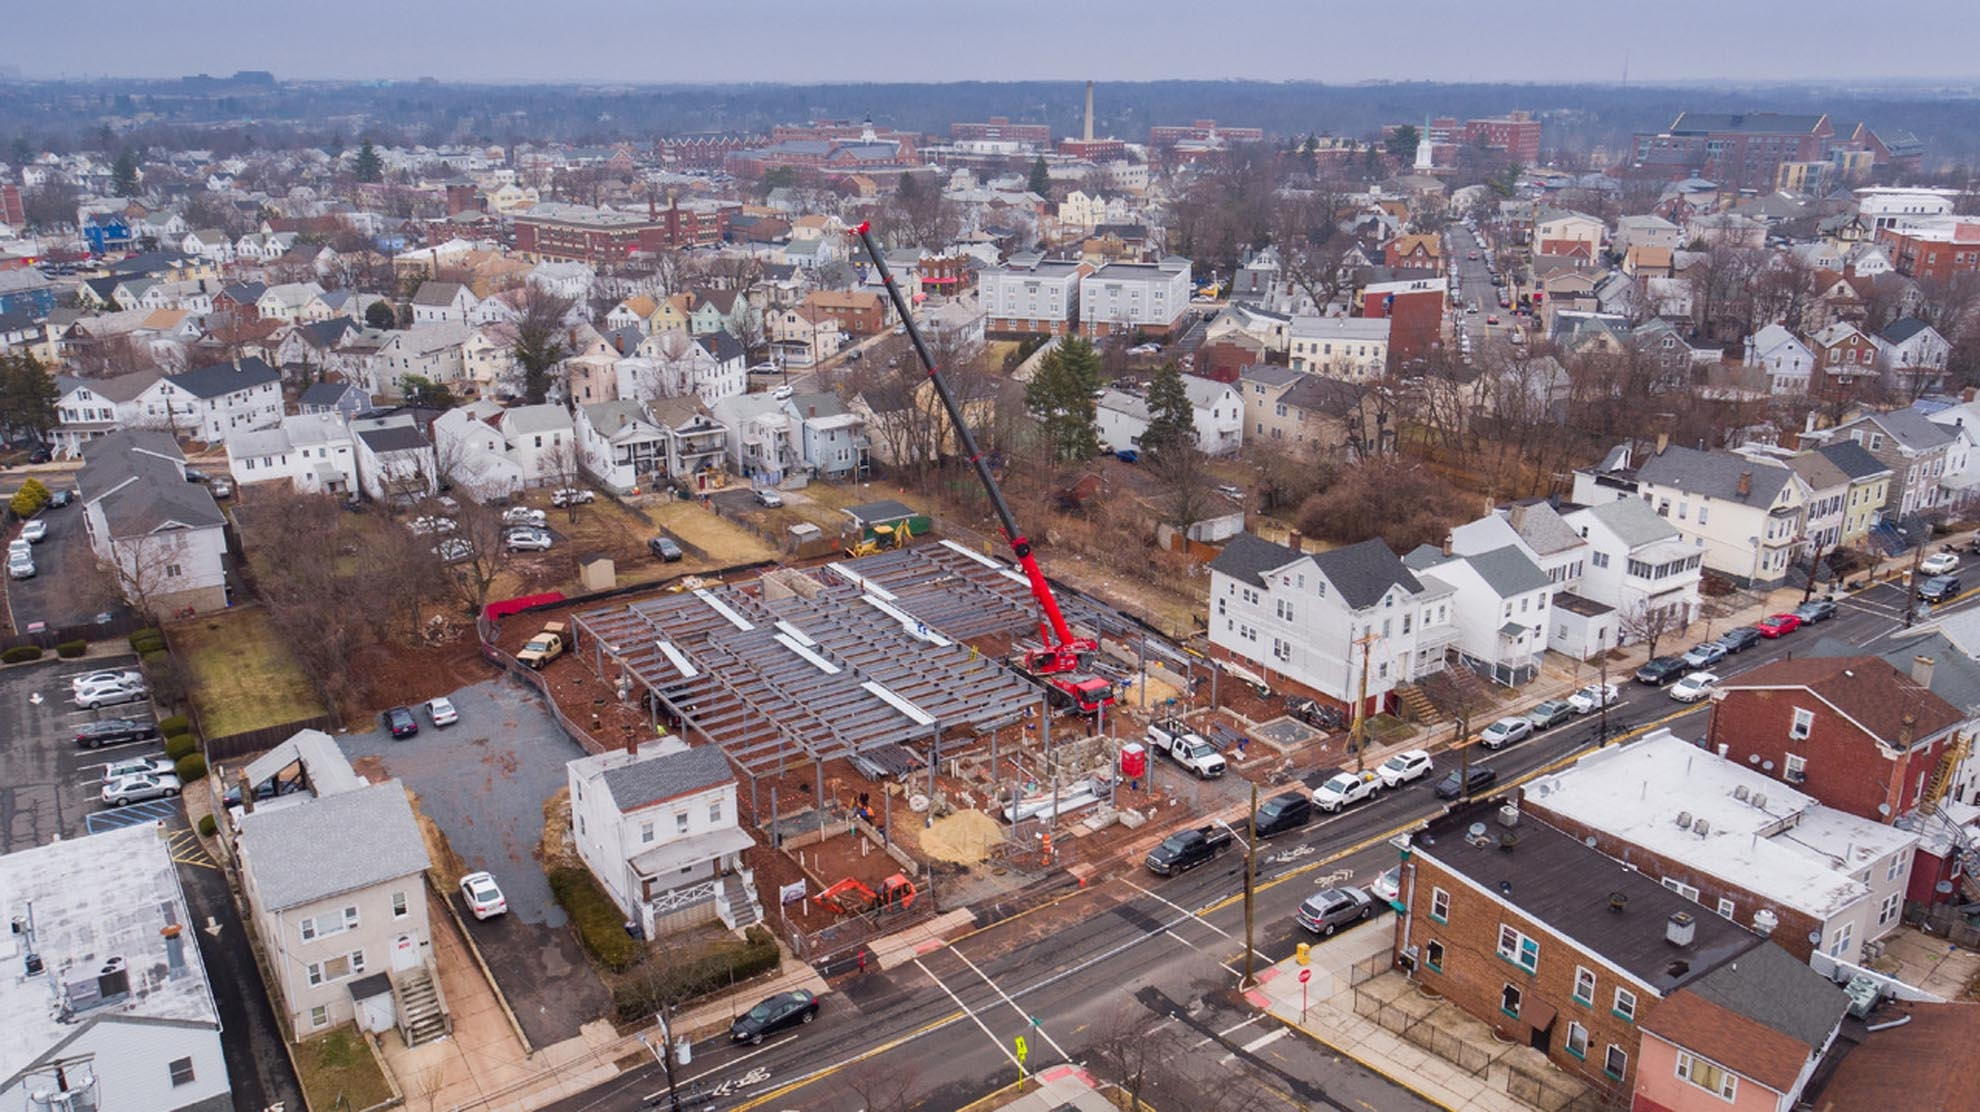 Drone Photograph of construction site with crane in New Brunswick New Jersey